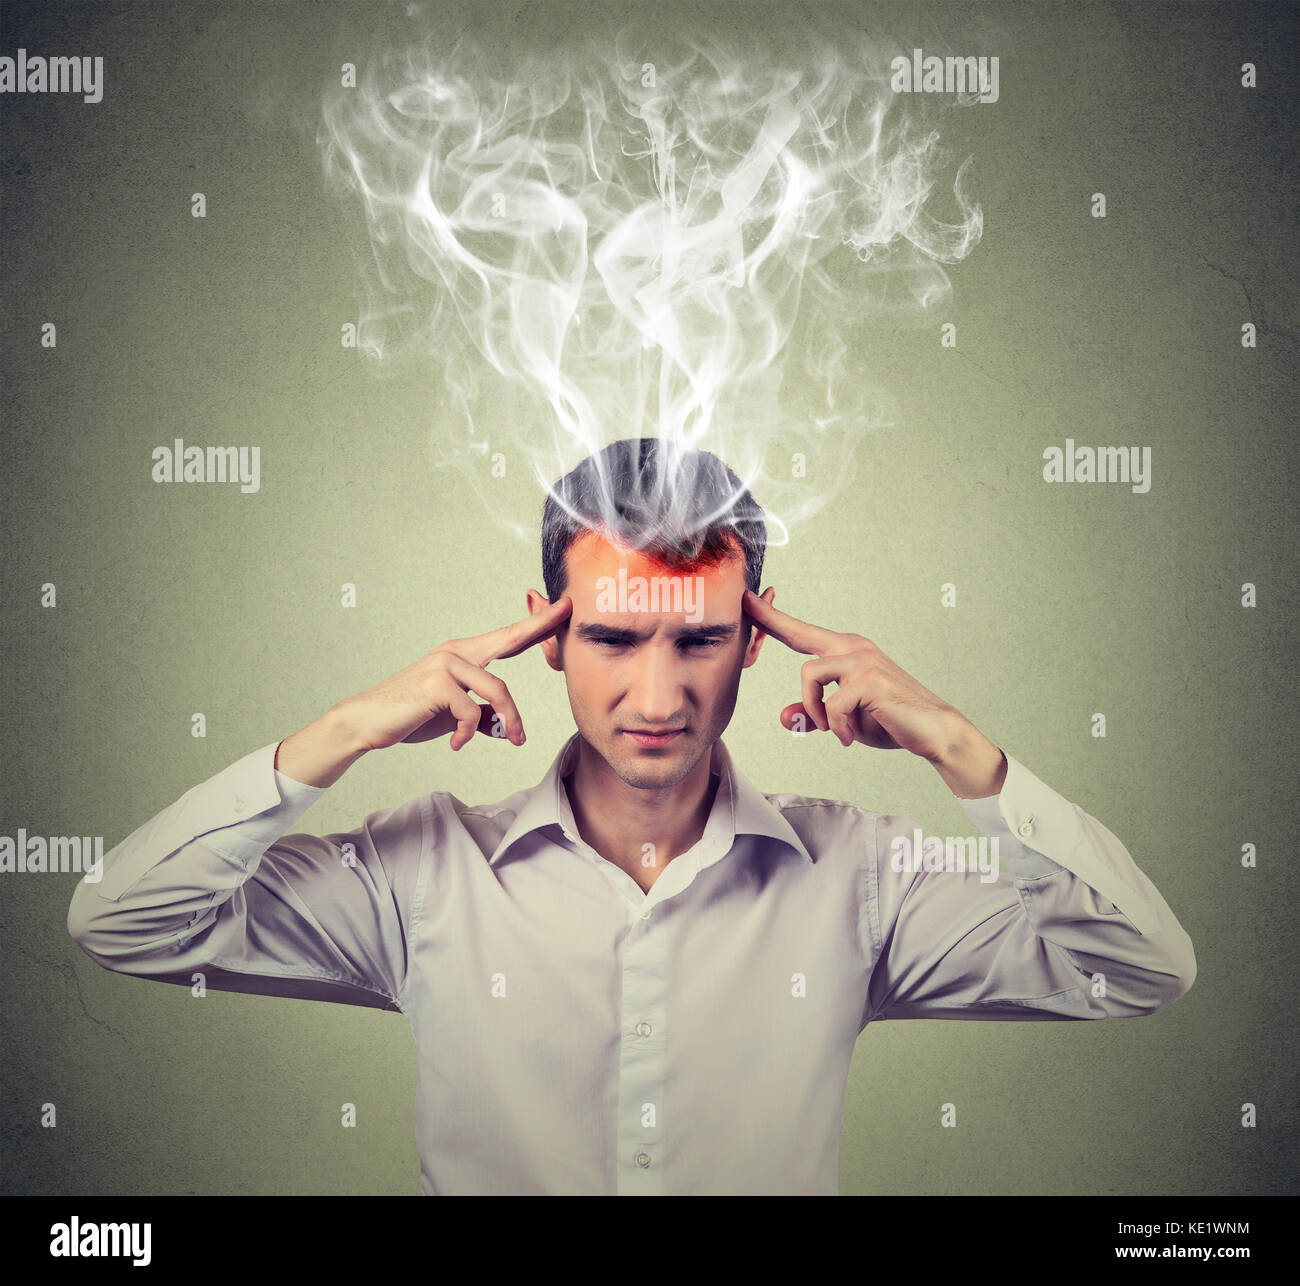 man thinks very intensely having headache isolated on gray wall background. human face expression - Stock Image